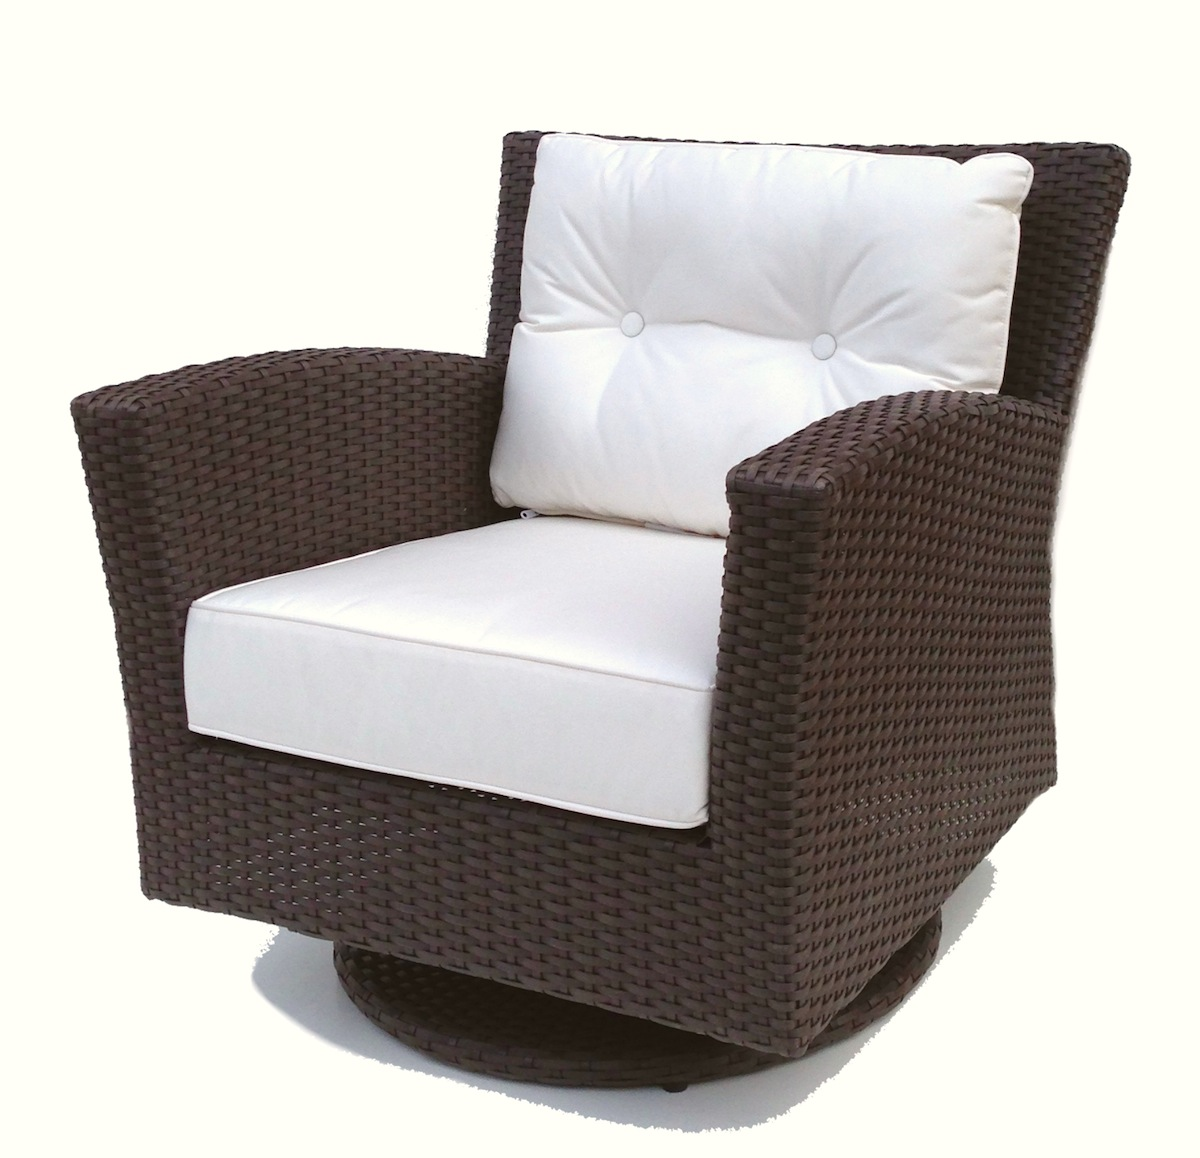 swivel chair outdoor cheap universal covers bulk wicker rocker sonoma